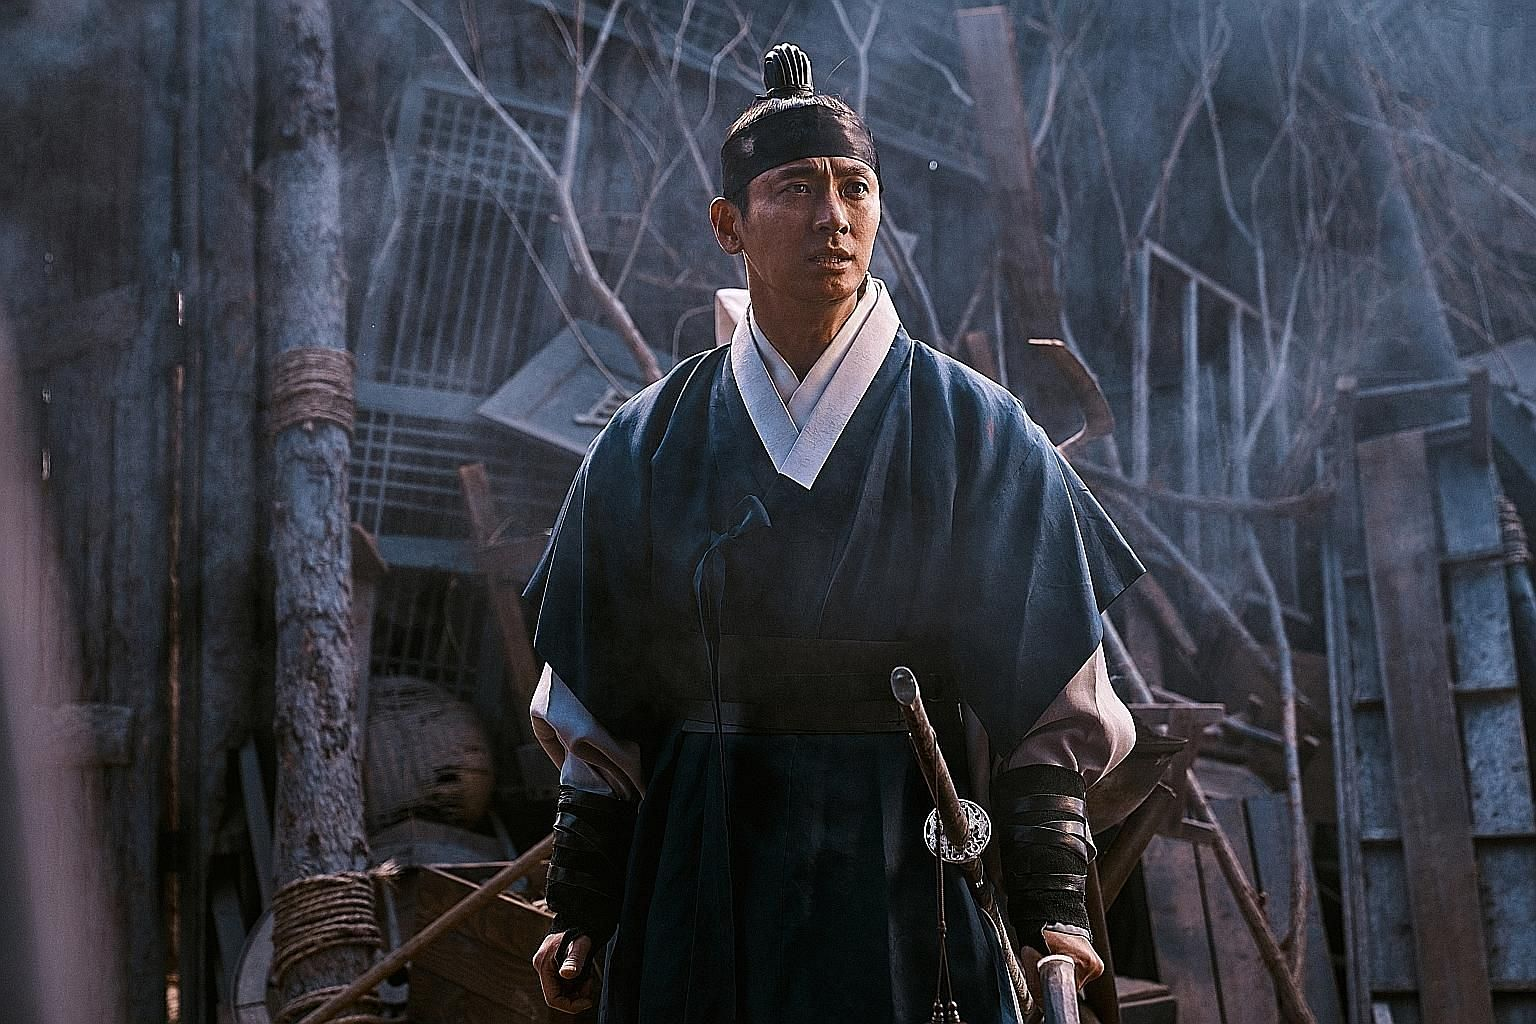 In the South Korean series Kingdom, actor Ju Ji-hoon (above) plays Lee Chang, a righteous prince, and actress Bae Doo-na as a physician caught in the middle of a zombie outbreak.